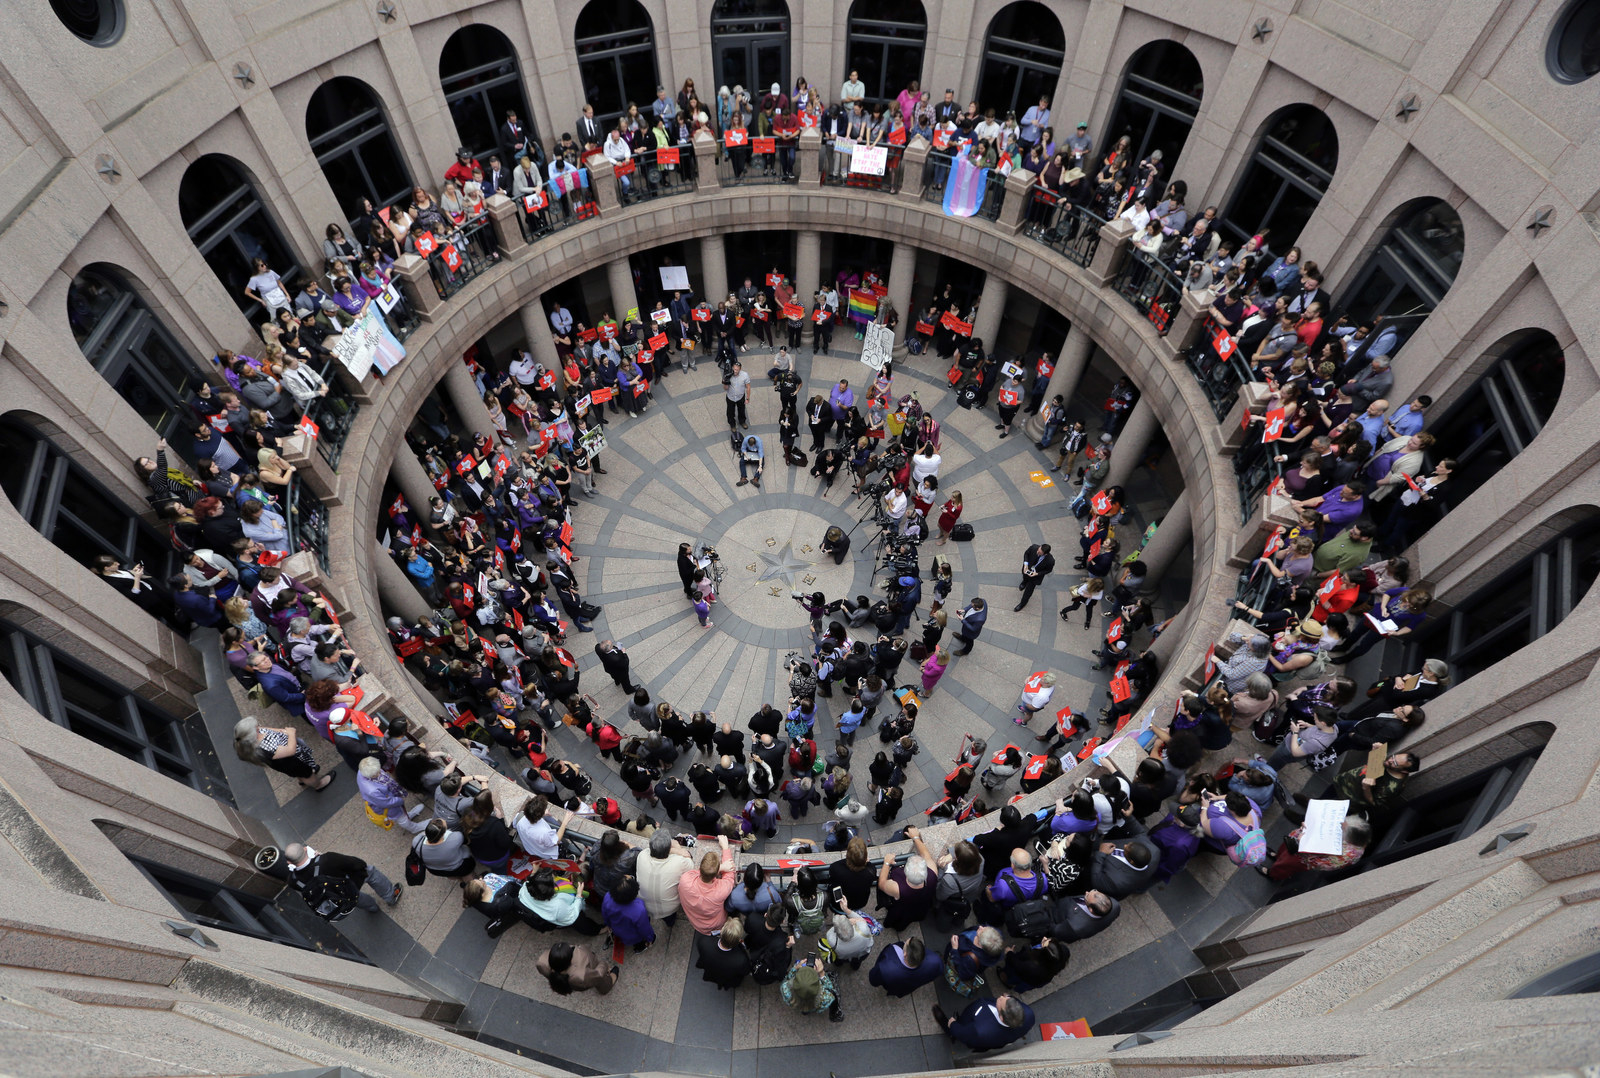 Anti trans bathroom bills just failed to pass in texas - Which states have bathroom bills ...